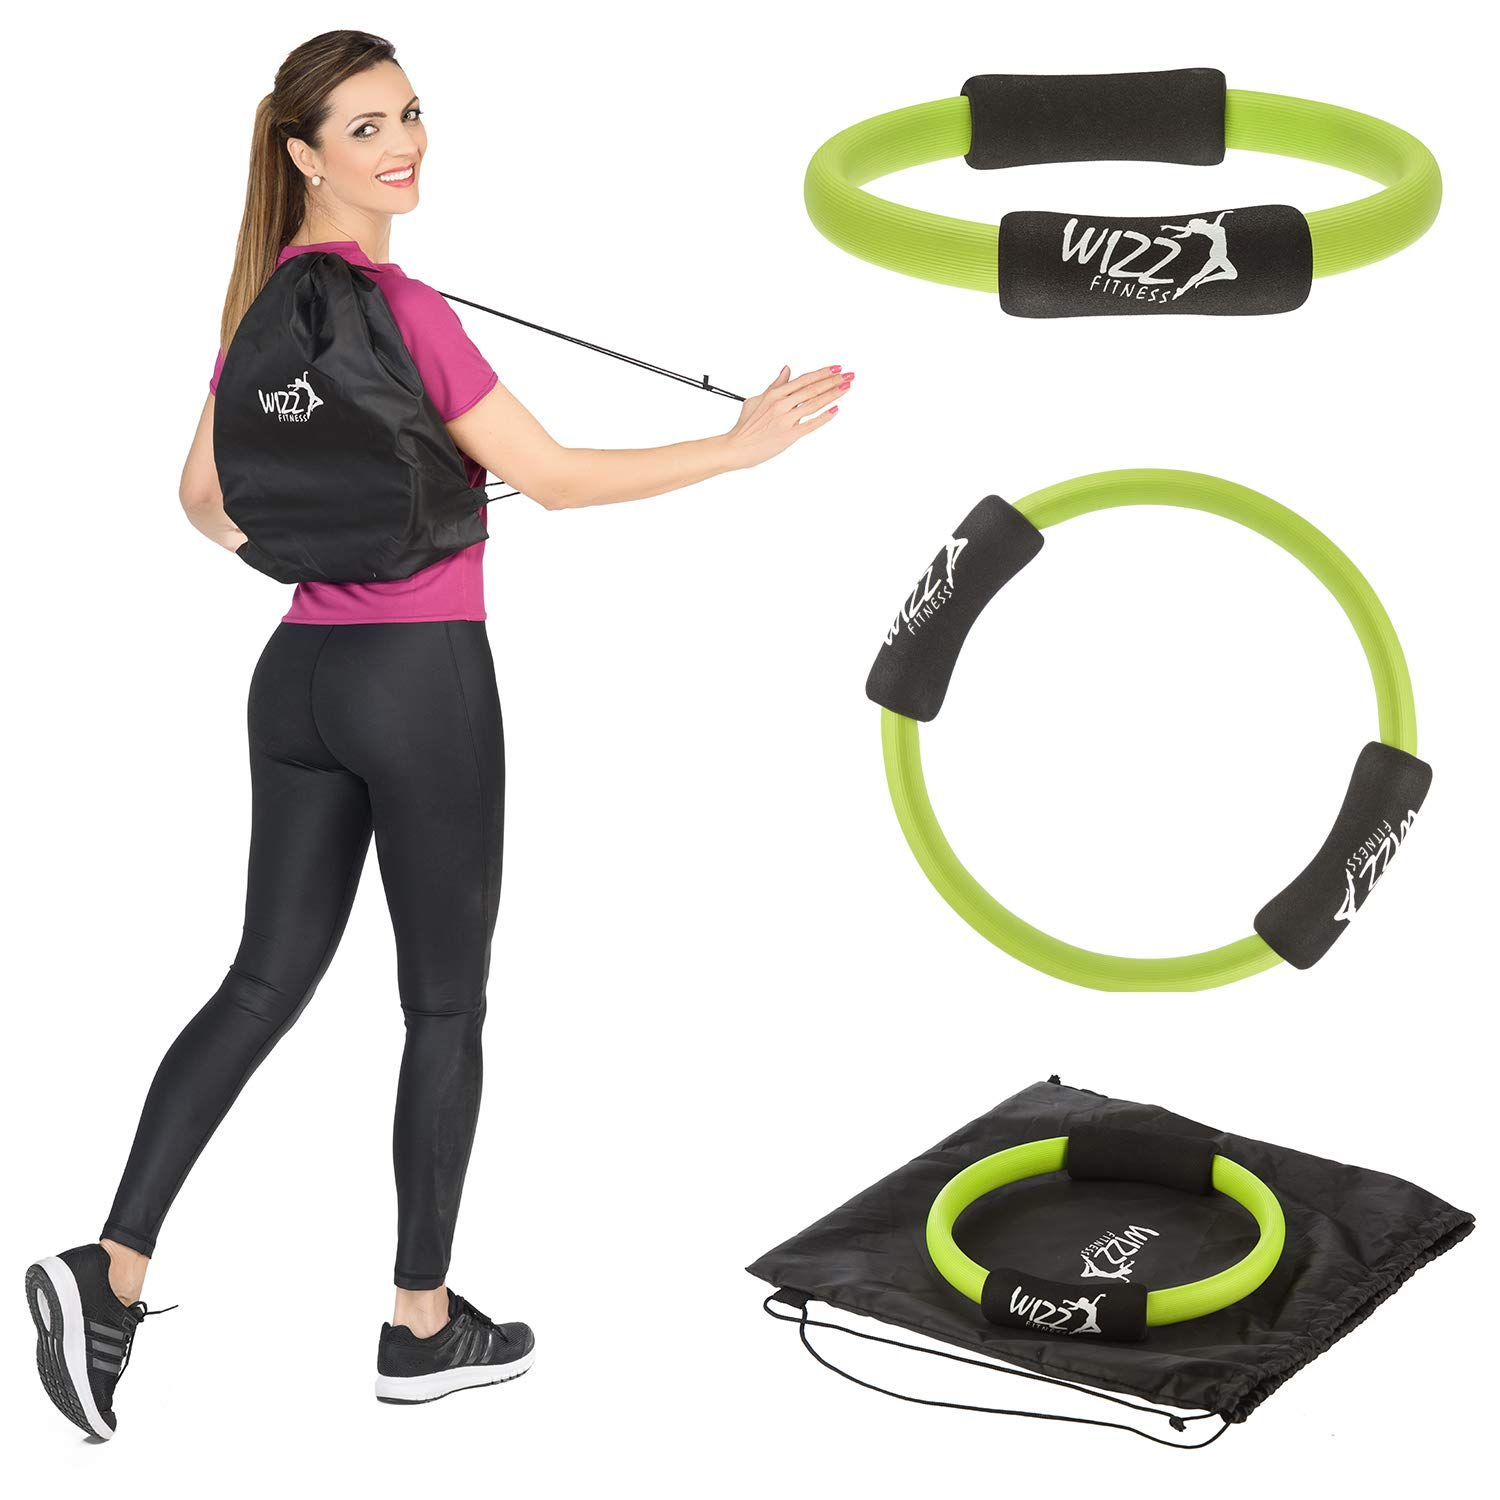 Wizz Fitness Pilates Ring 12 inch Pilates Magic Circle with Foam Handles & Carry Bag for Yoga, Pilates - Suitable for Both Beginners and Advanced - Lightweight and Resistant